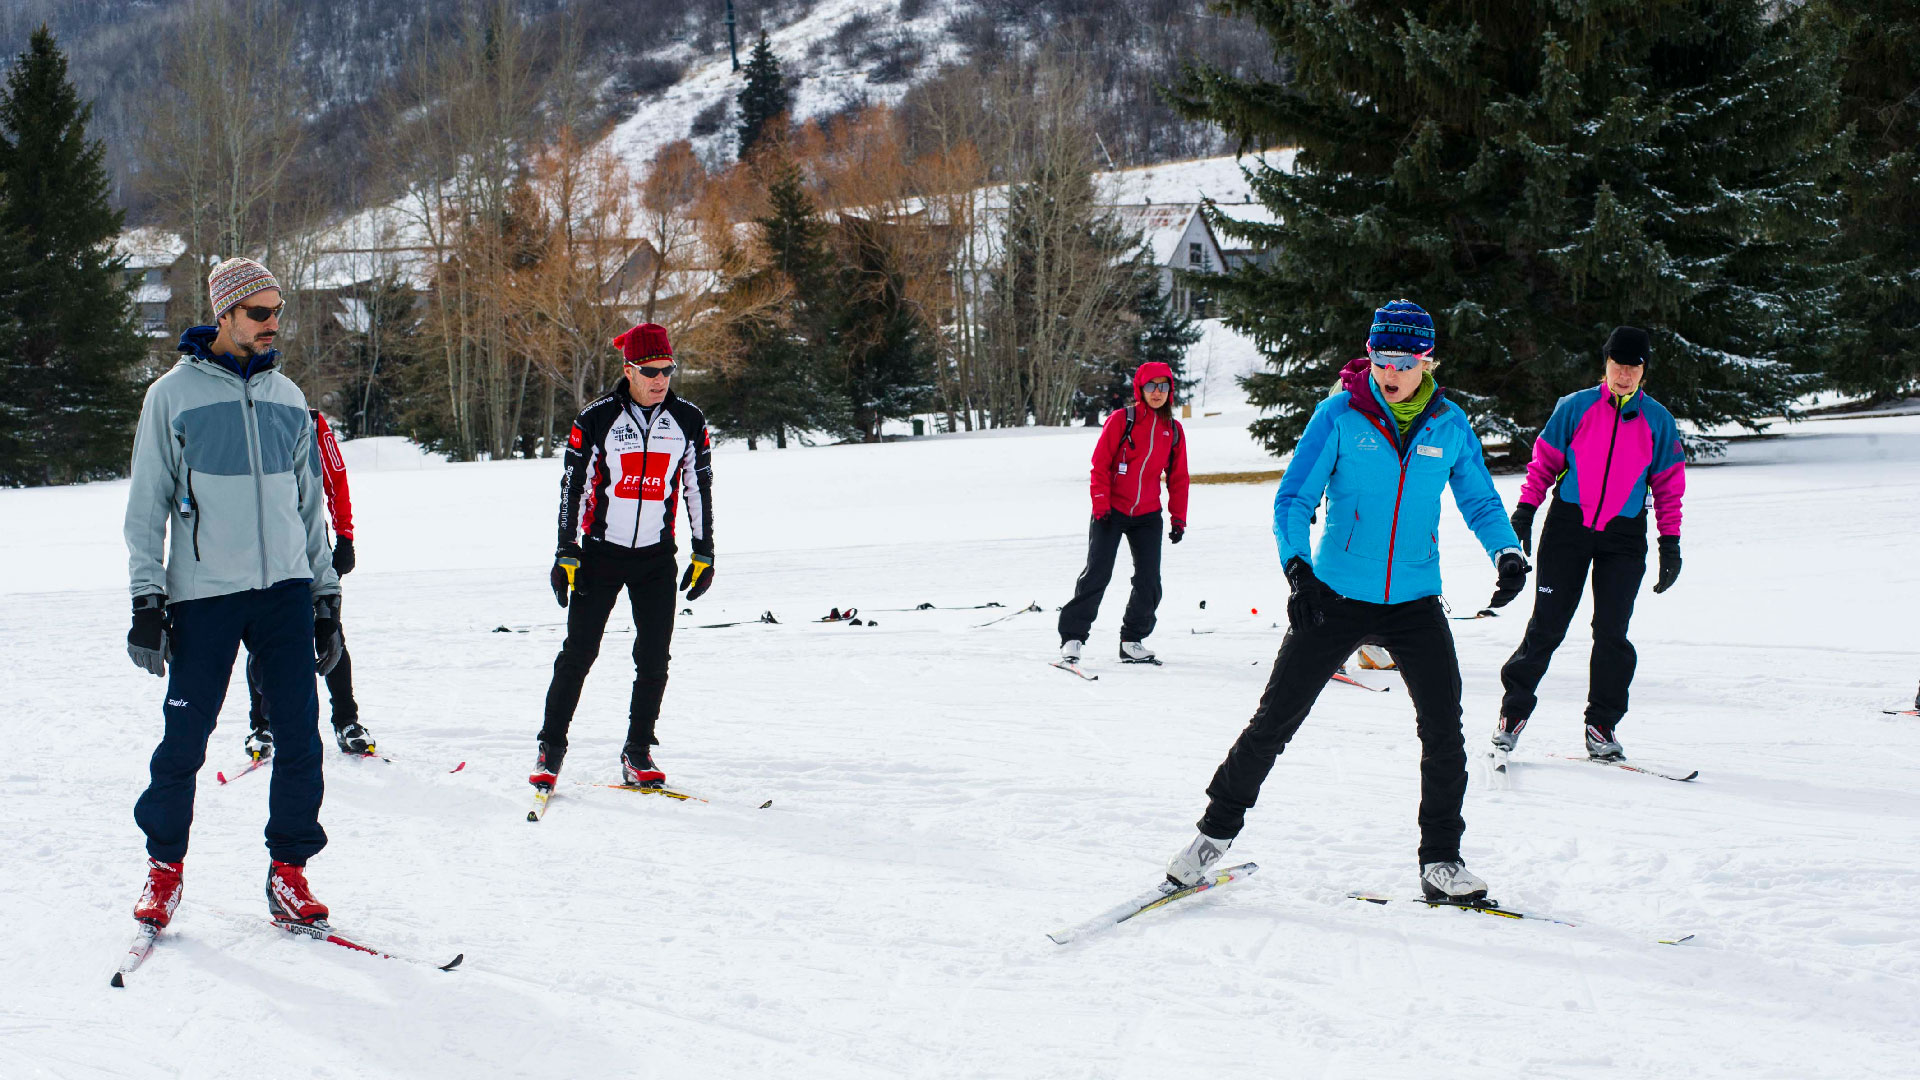 Group Skate Cross Country Lesson from White Pine Touring in Park City, UT.